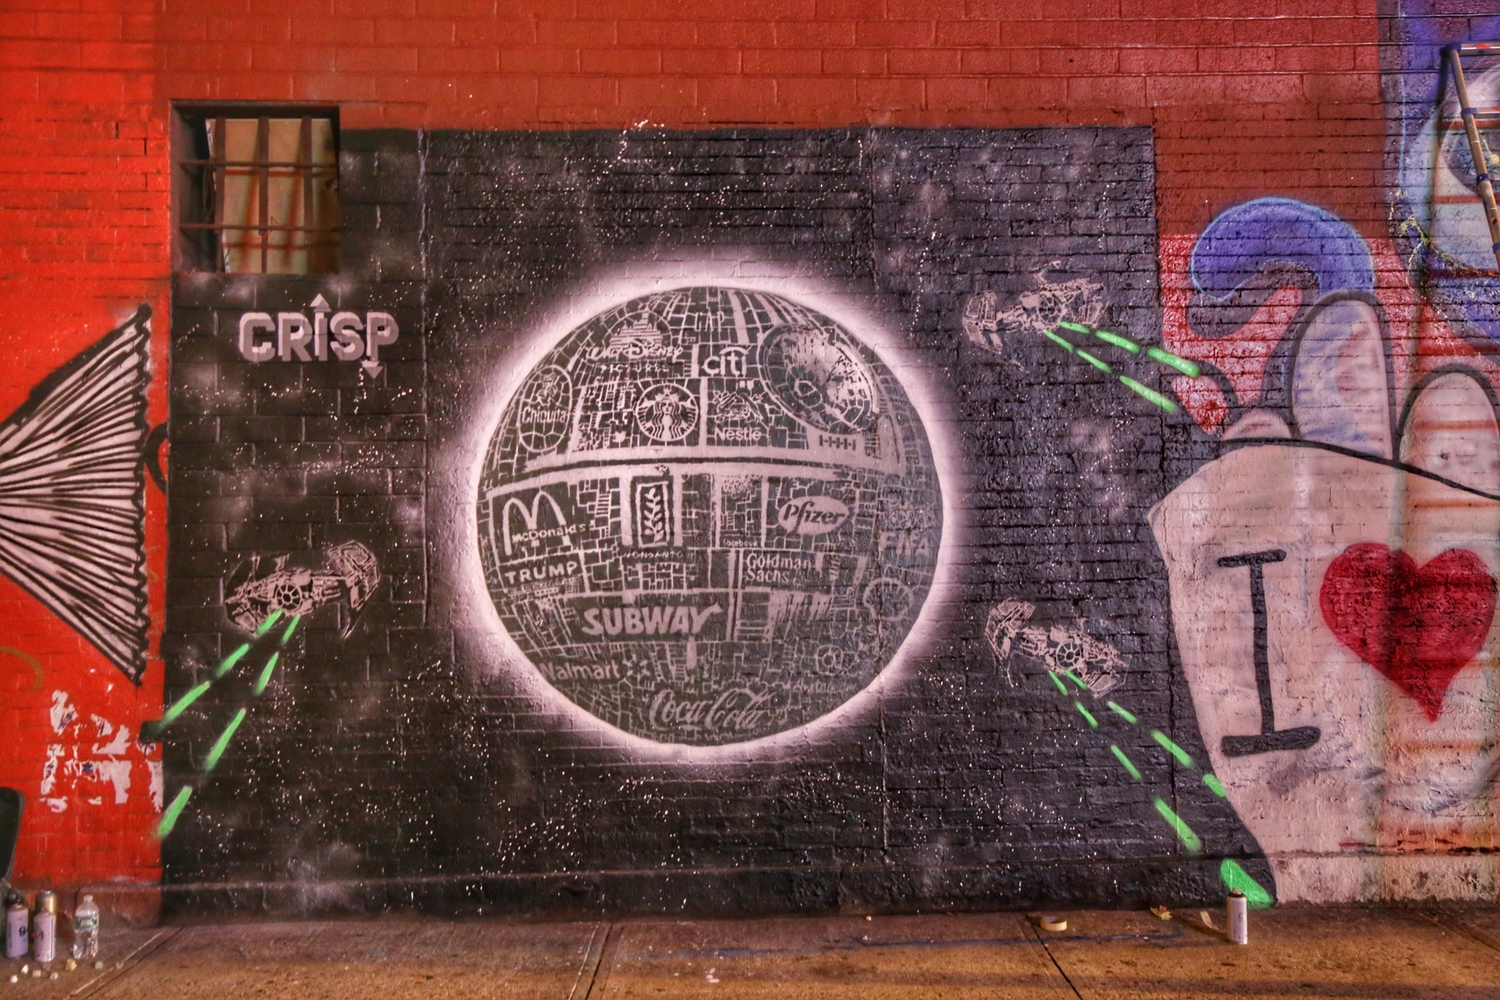 'Corporate Death Star' by Crisp